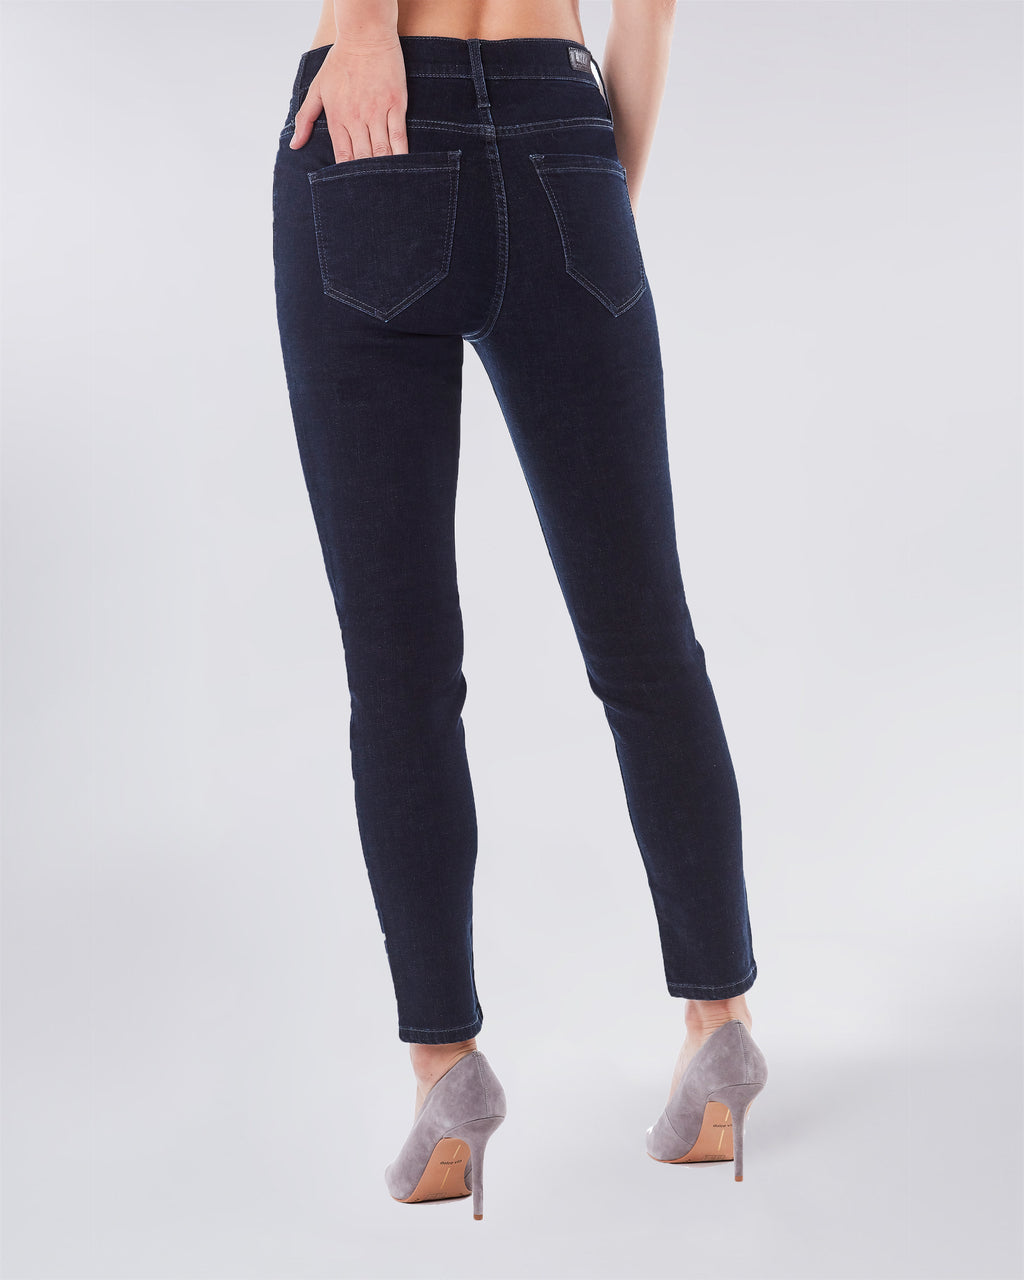 NJ0299S - SWAROVSKI CrySTAL SOHO HIGH RISE SKINNY - bottoms - denim - An update to the classic high rise skinny jean, this Swarovski Crystal embellished pant will dress up any look. Complete with Lyrca Beauty.